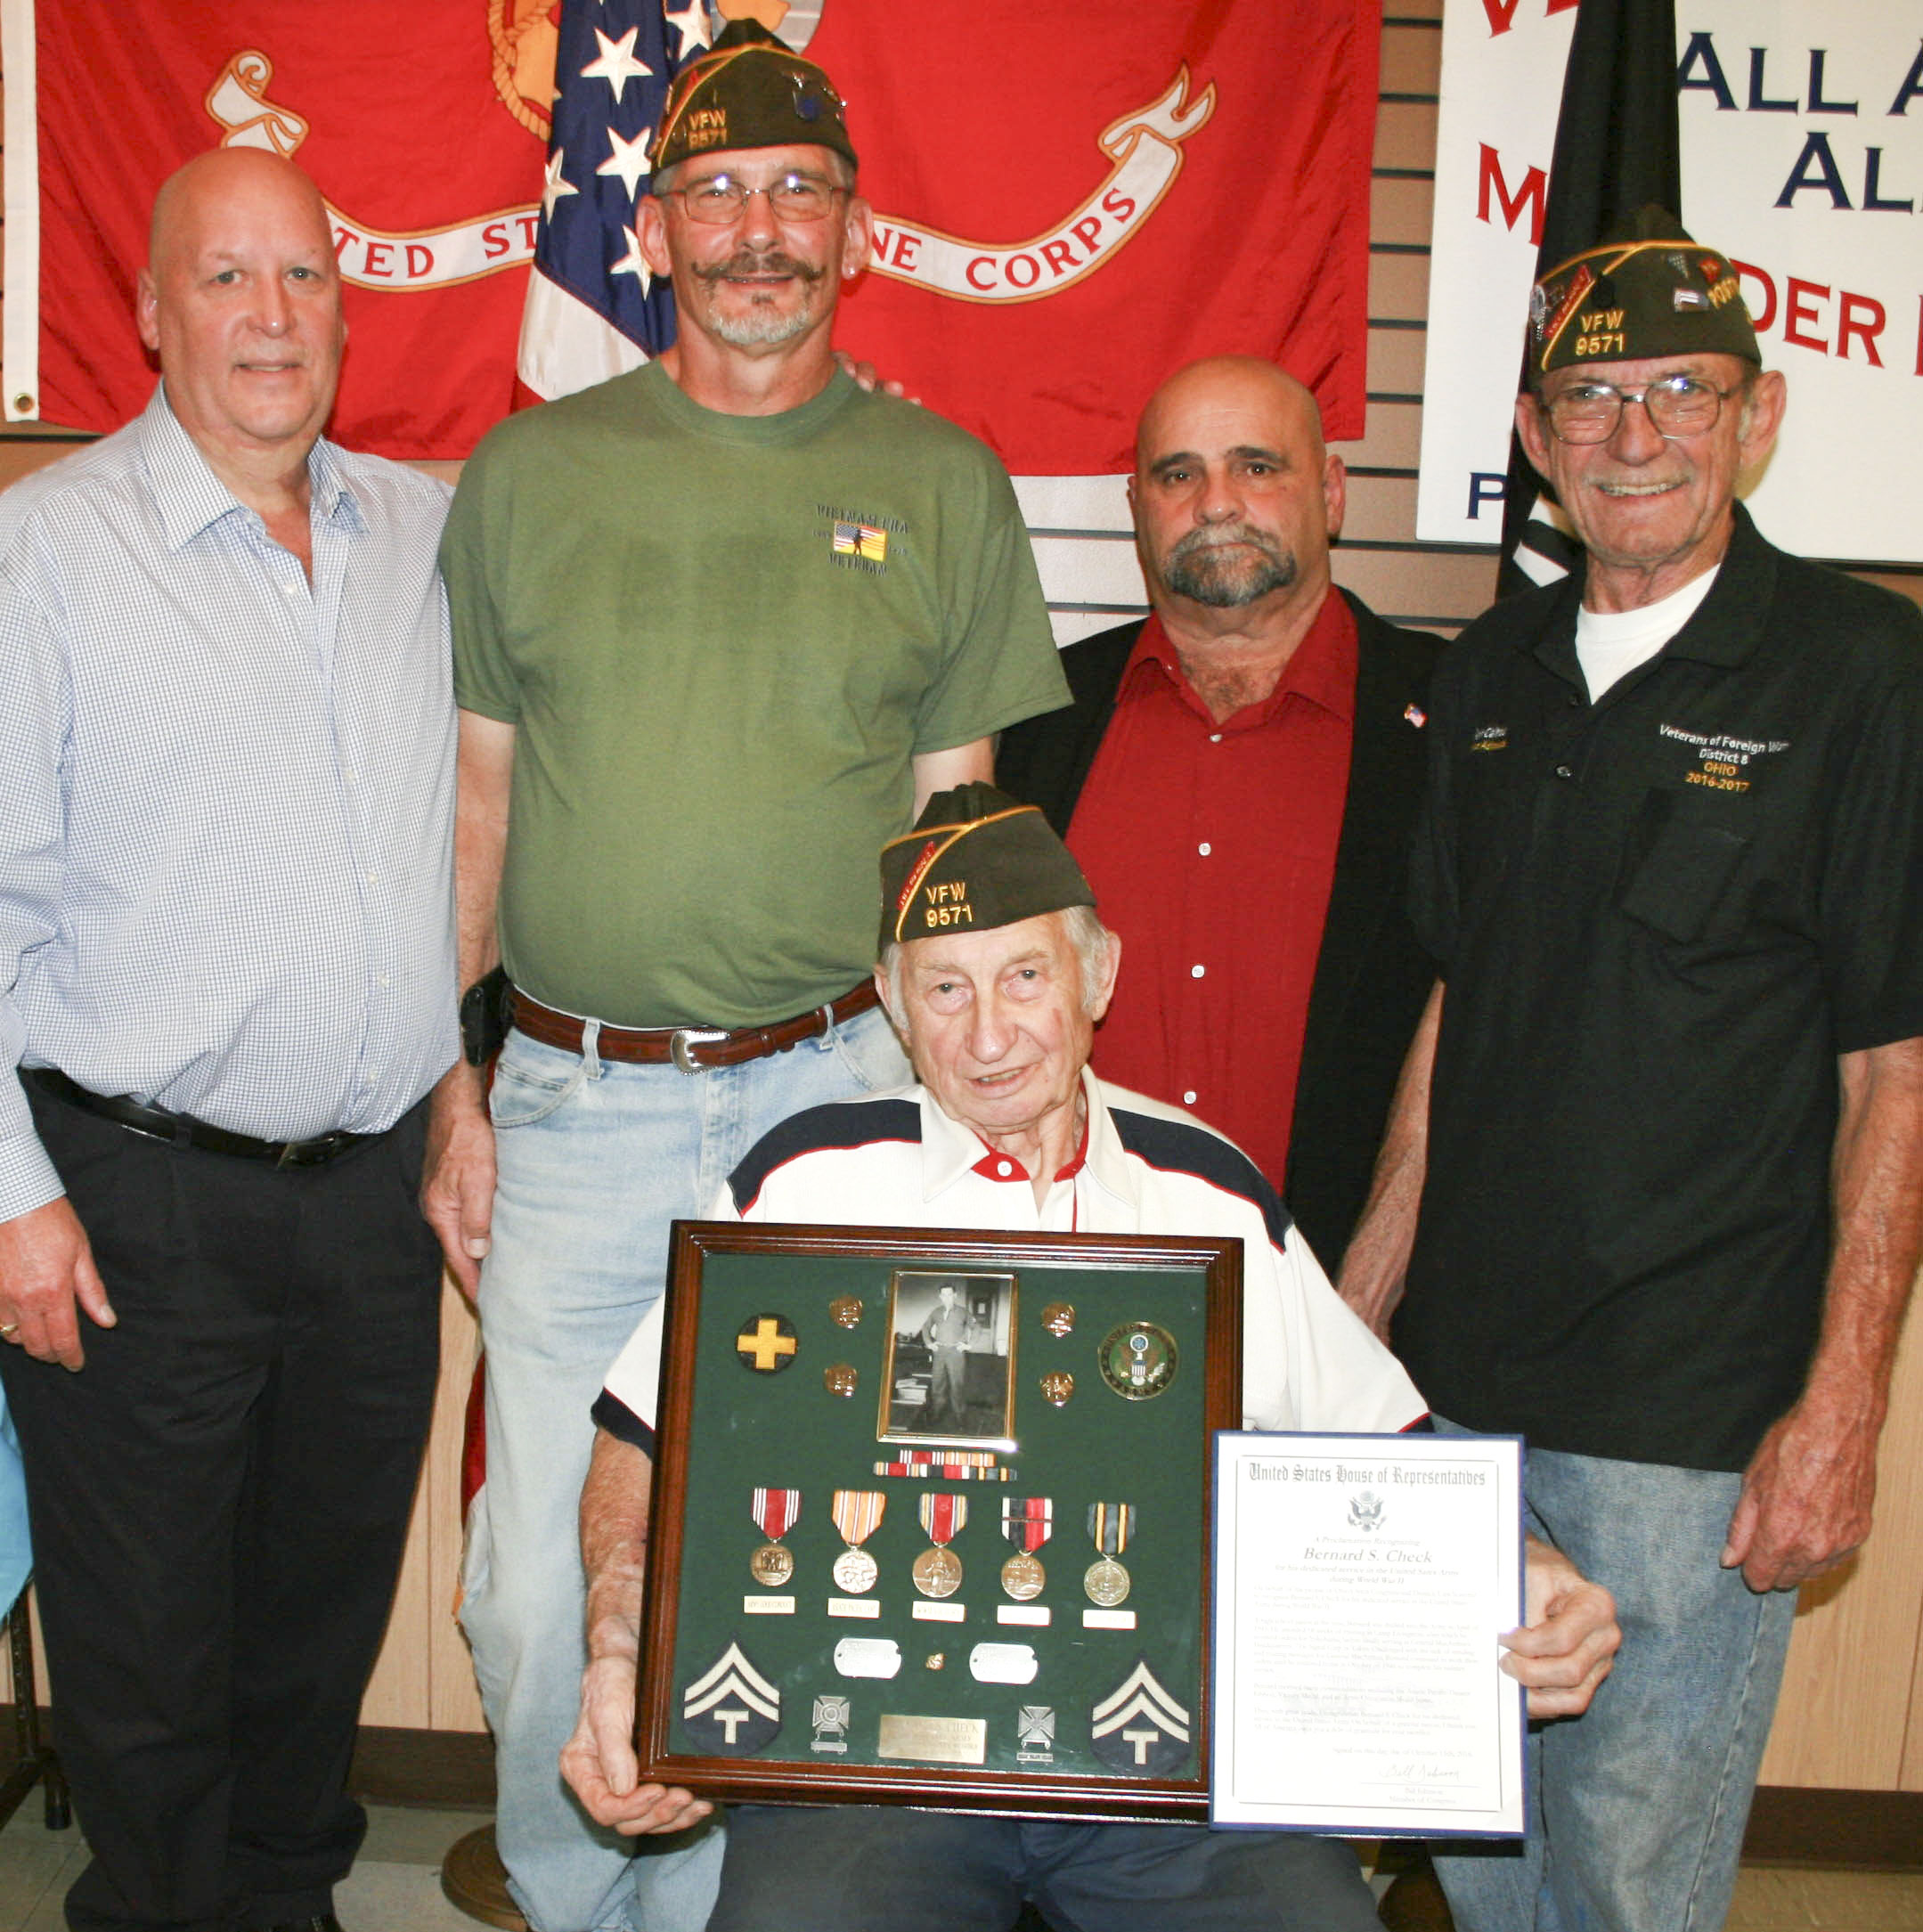 SPECIAL TO THE VINDICATOR: Veterans of Foreign Wars Post 9571 in Ellsworth recently honored Bernard S. Check with a Congressional Proclamation of Recognition for his service in the Army during World War II. Check was drafted in 1945 as a junior in high school and eventually served at General MacArthur's headquarters in Tokyo. Some of the awards he received included the Asiatic Pacific Theater ribbon, Victory medal, and an Army Occupation Medal, Japan. Check, seated, received the award from Denny Furman, Berlin Center Township trustee, standing on the left; Tom Check, vice post commander; Artie Spellman, Ellsworth Township trustee; and Ken Calhoun, post commander.